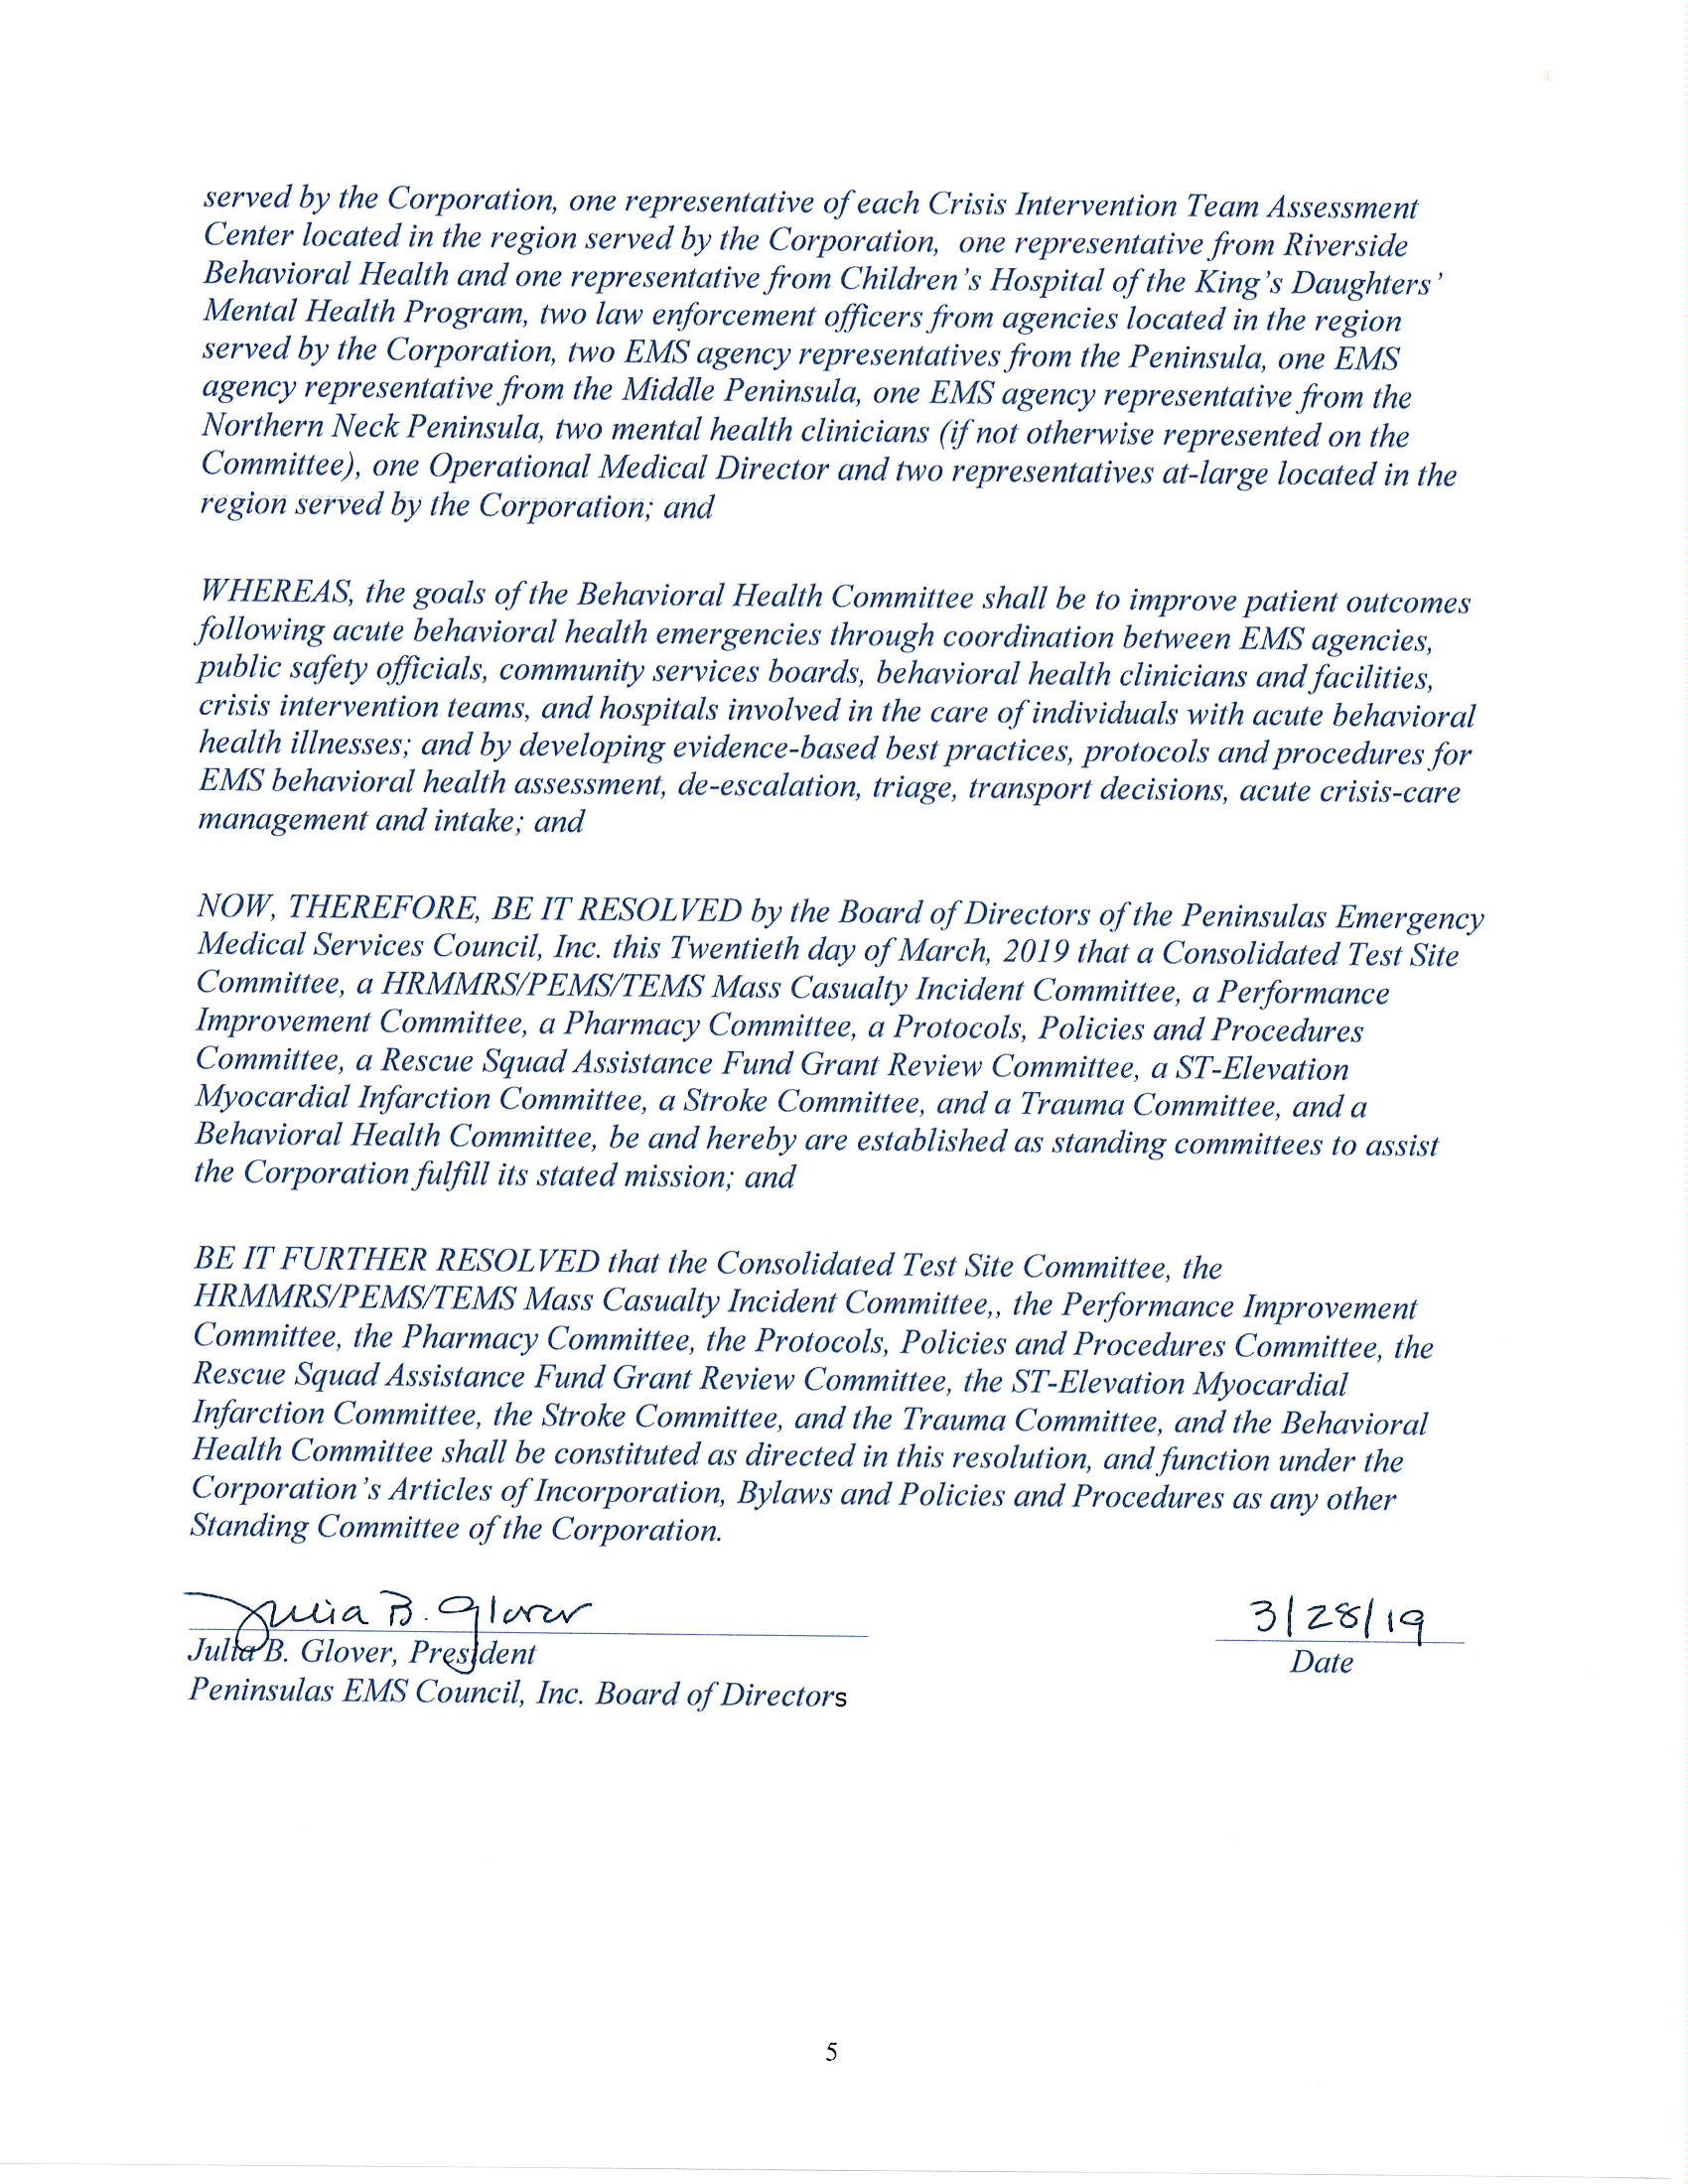 PEMS BOD Resolution to Establish Standing Committees 3 20 2019 Page 5